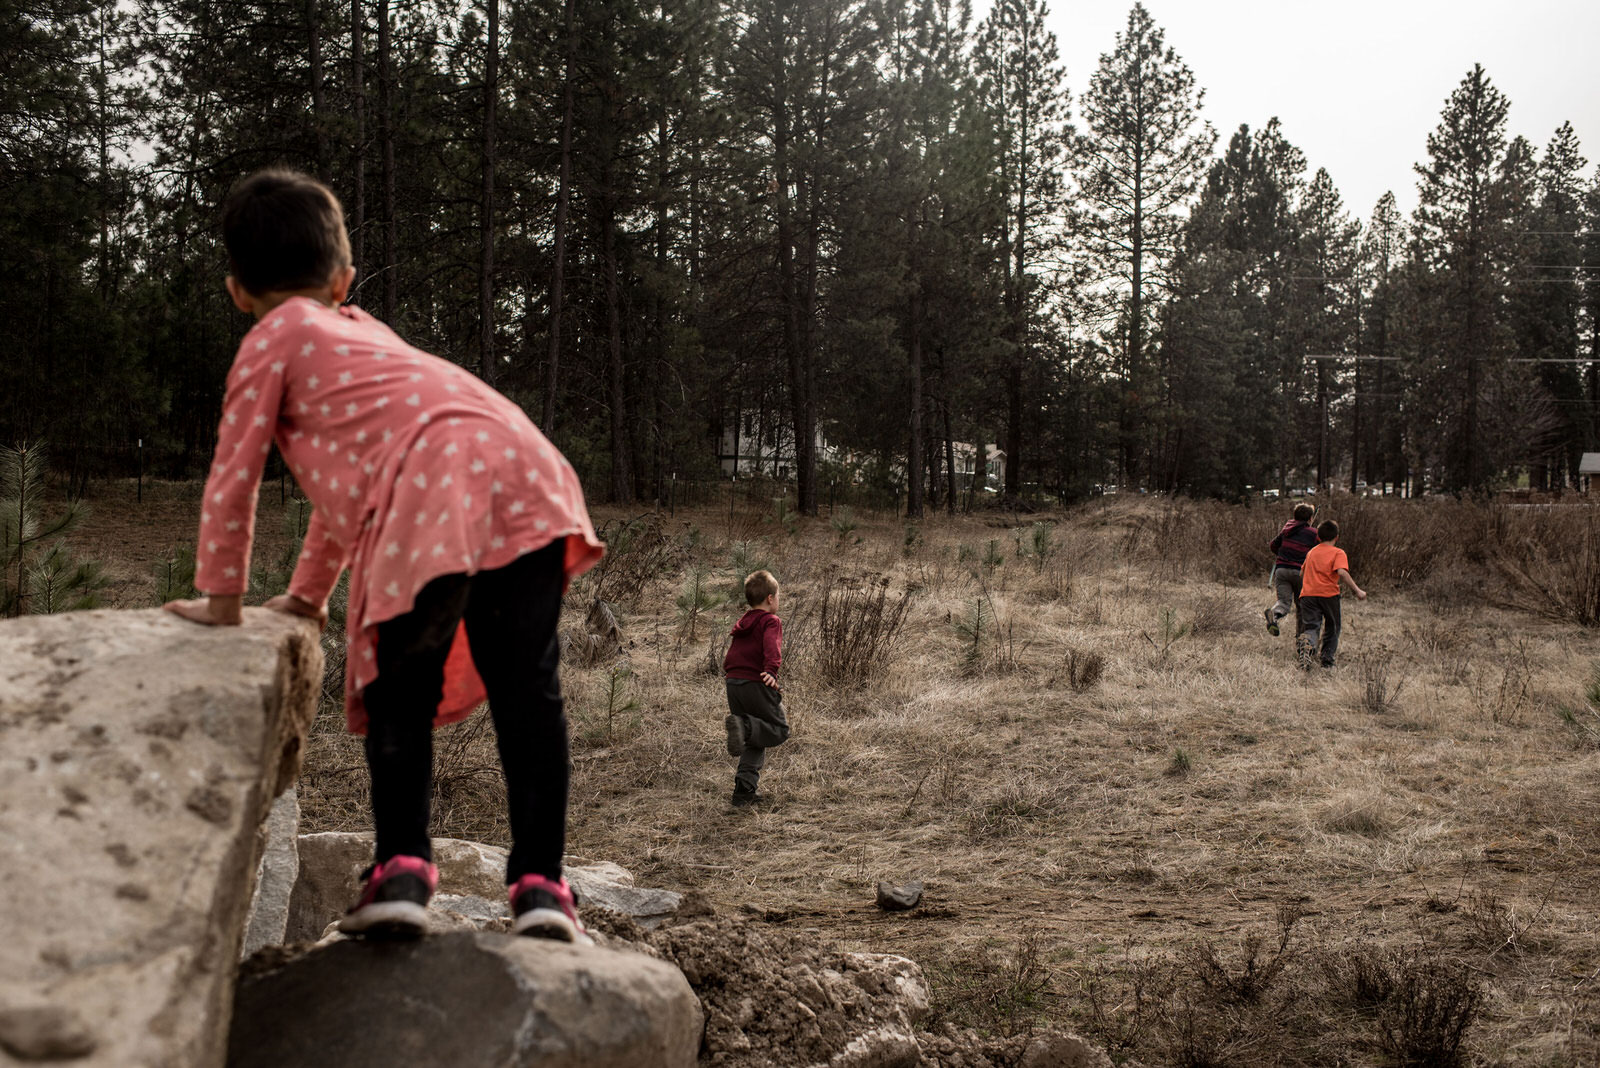 Age 5. Walking in a wooded area near our house, we saw a group of boys playing with bows and arrows. He watches curiously. At one point, he calls out to them but they don't hear or acknowledge him. As we get closer, they run off.